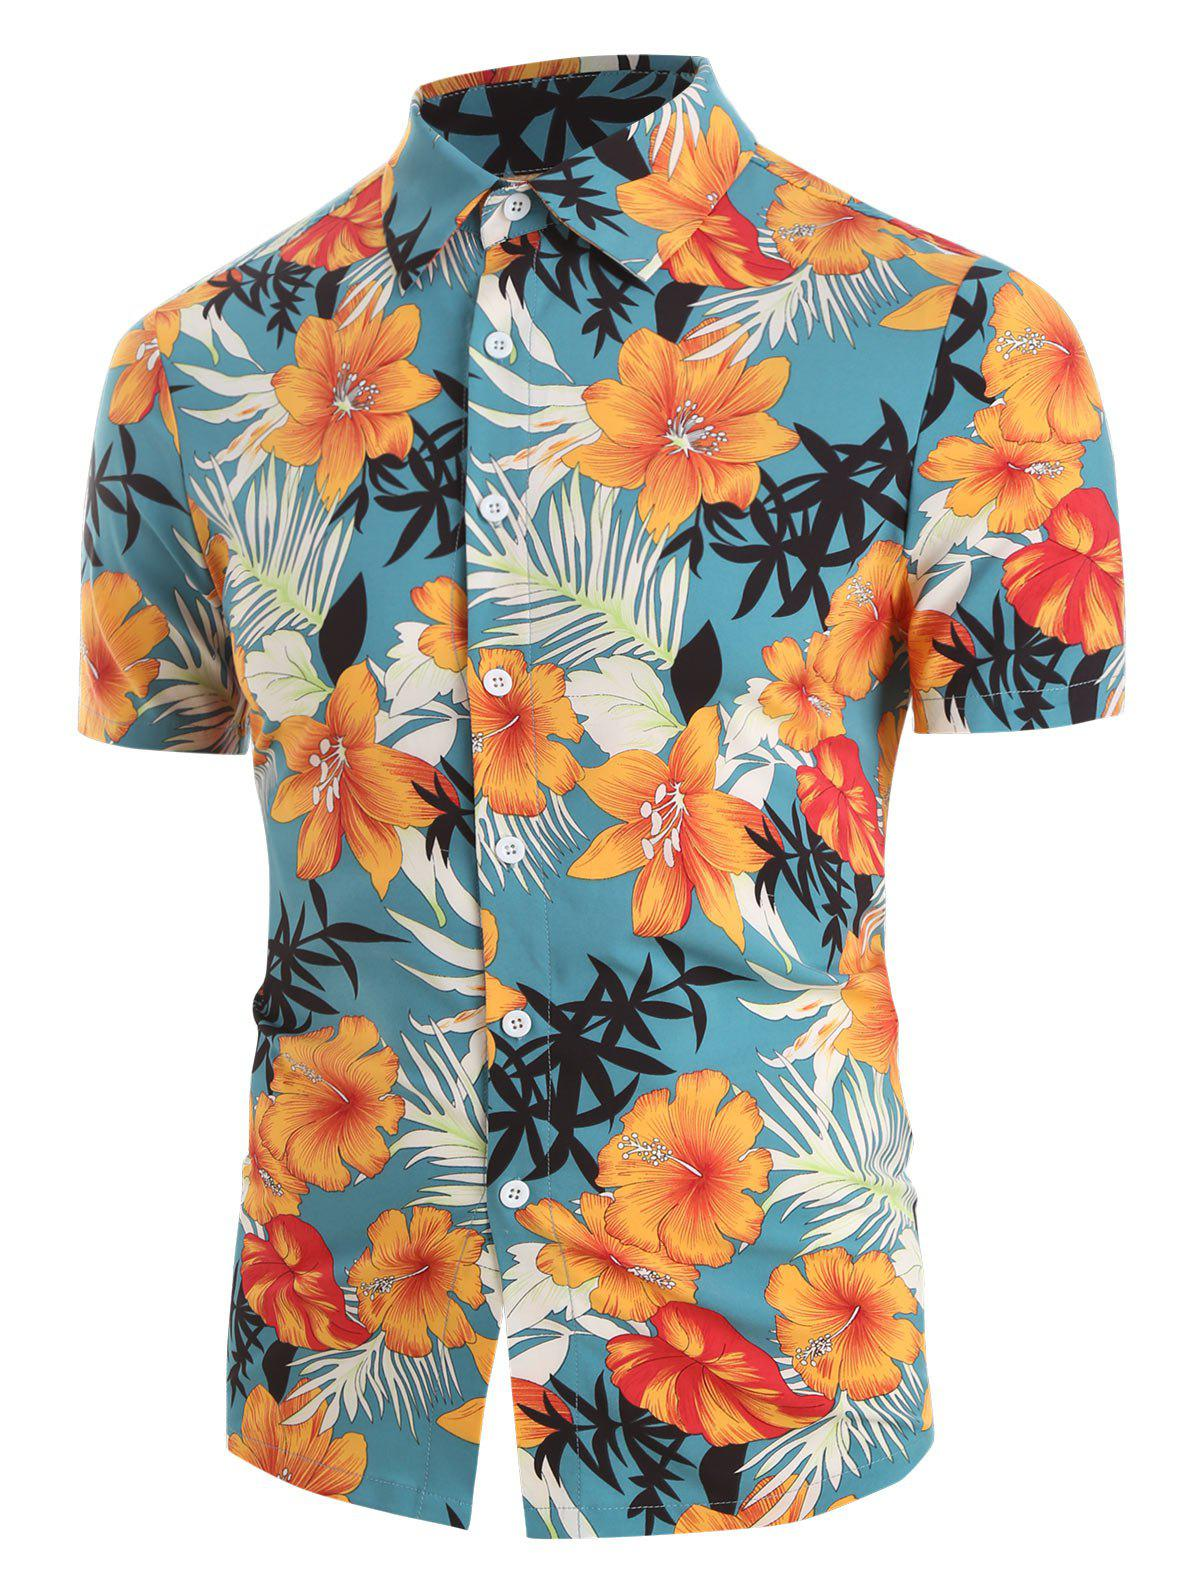 Fashion Tropical Flower Print Button Up Short Sleeve Shirt